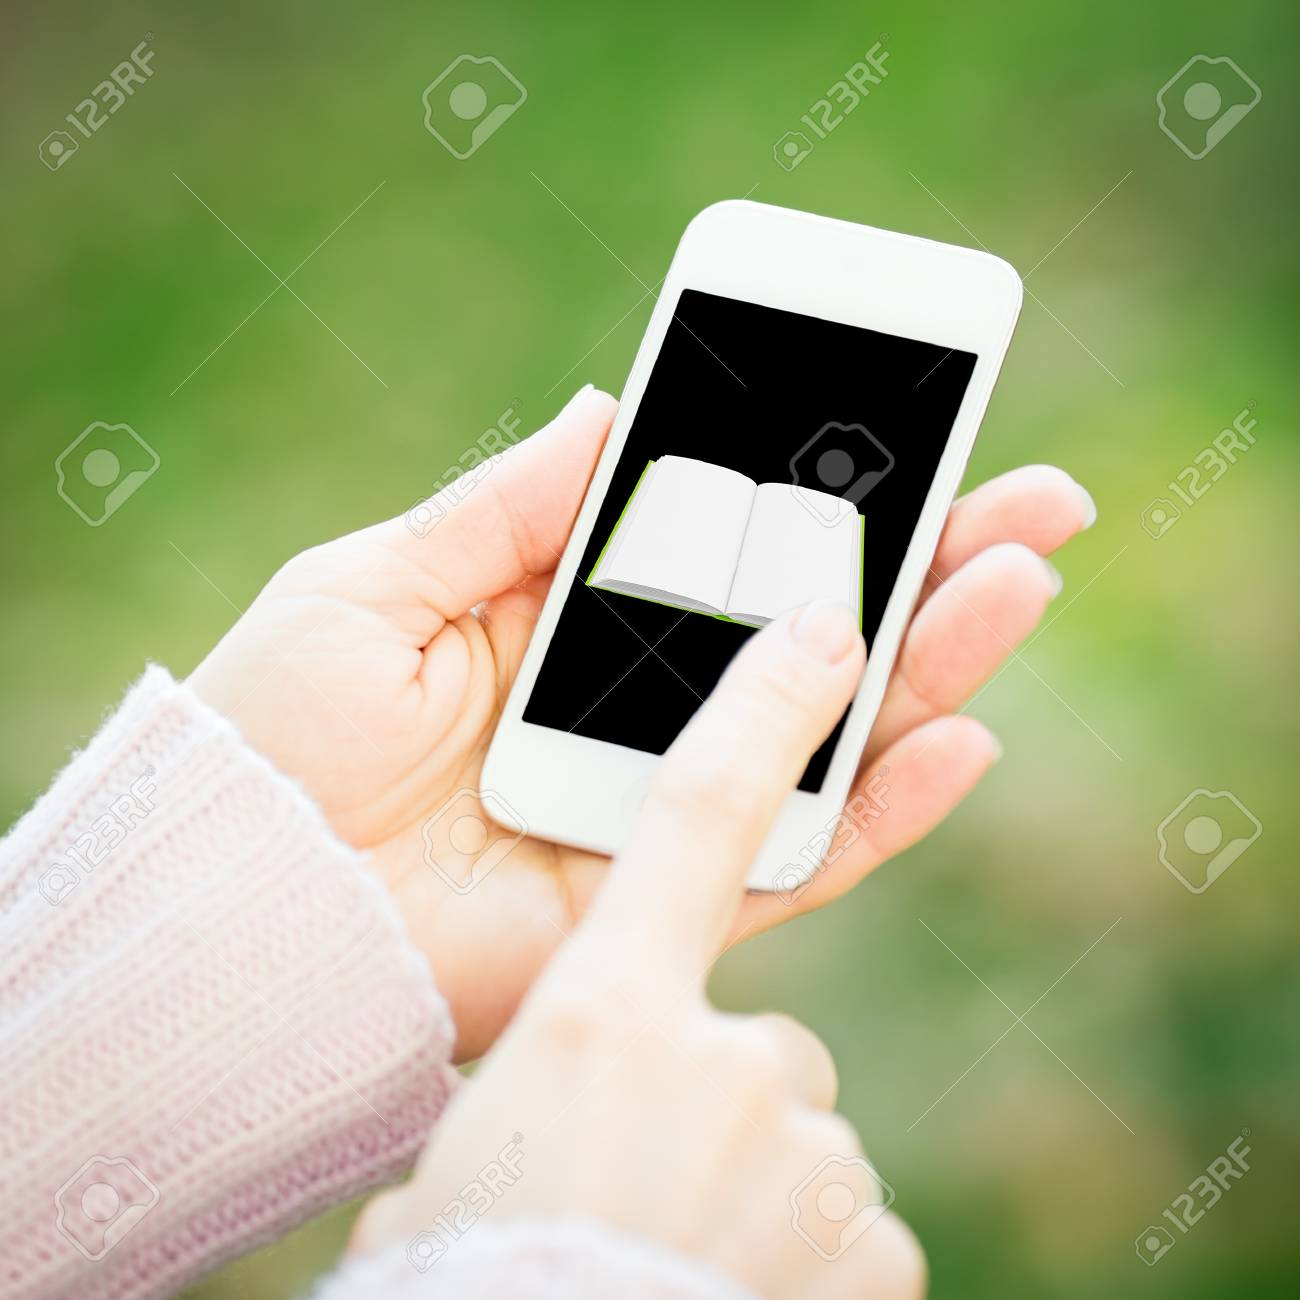 Smartphone with book in woman hands against green spring background Stock Photo - 18394769